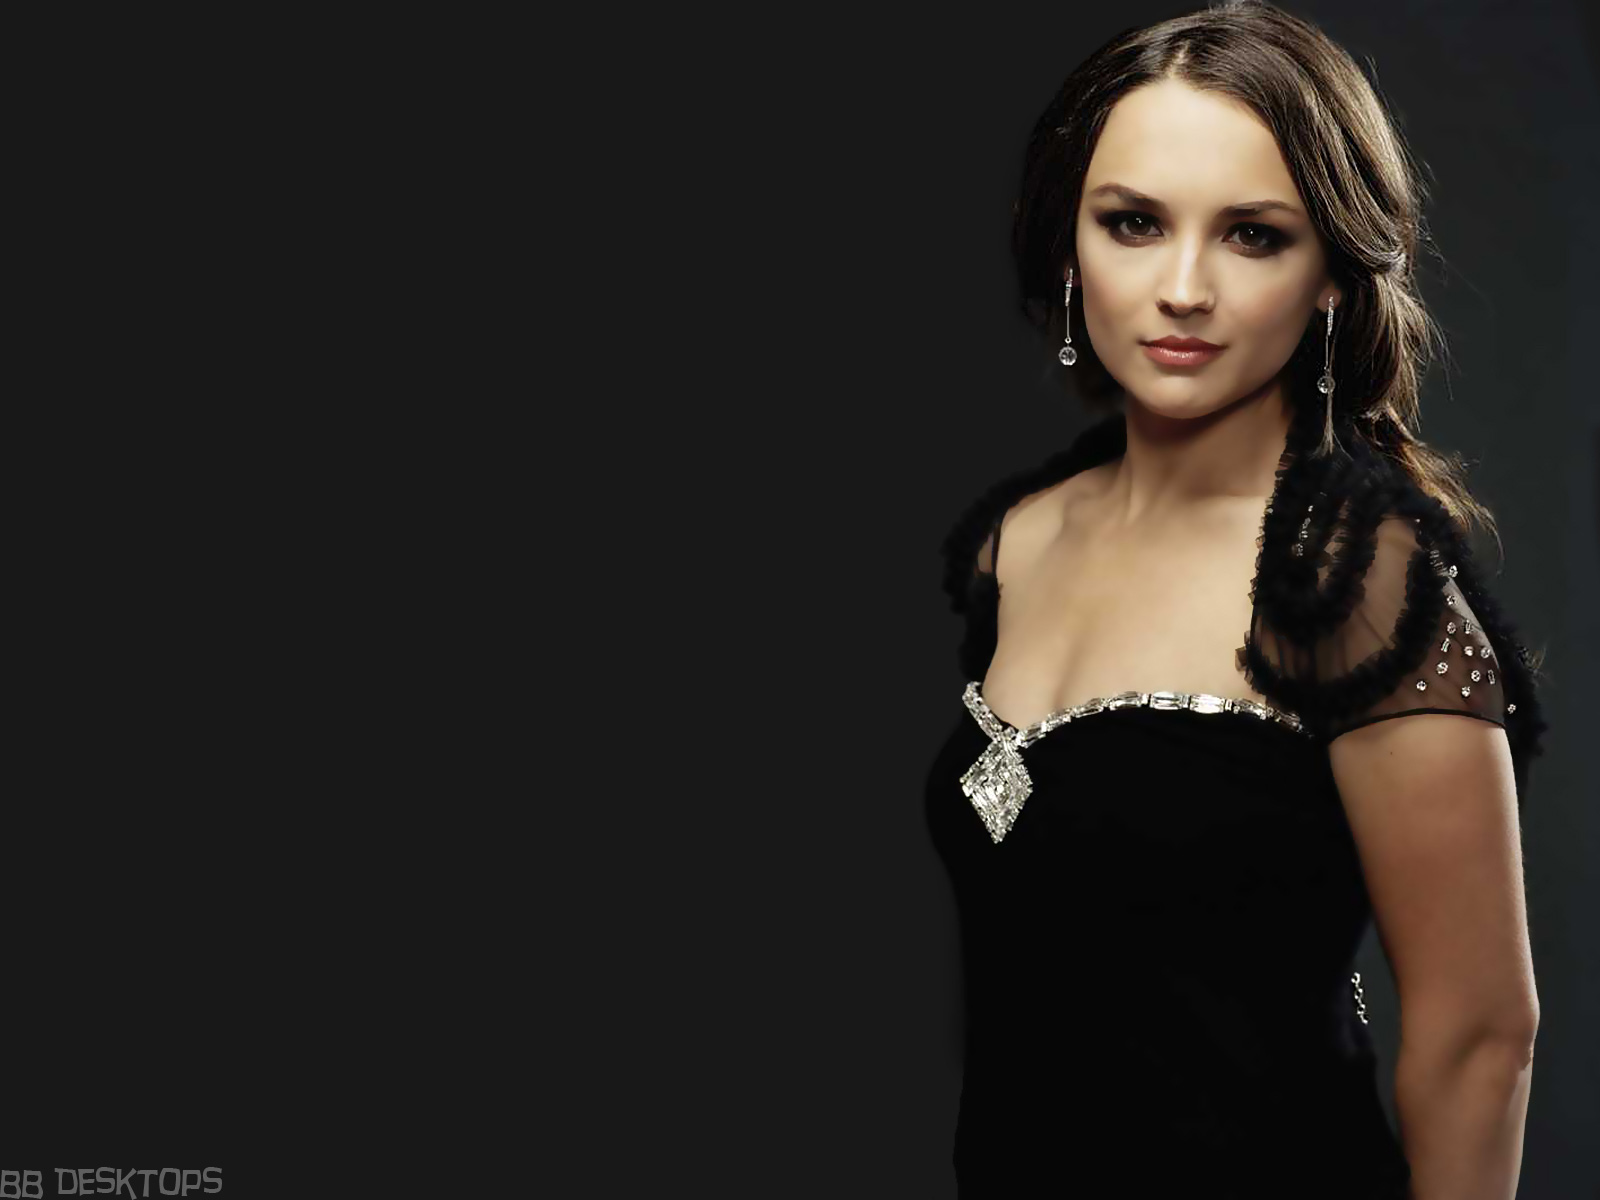 Rachael Leigh Cook Wallpapers Are High Definition And Available In Wide Range Of Sizes And Resolutions. Download Full HD Wallpapers Absolutely Free For Your ...